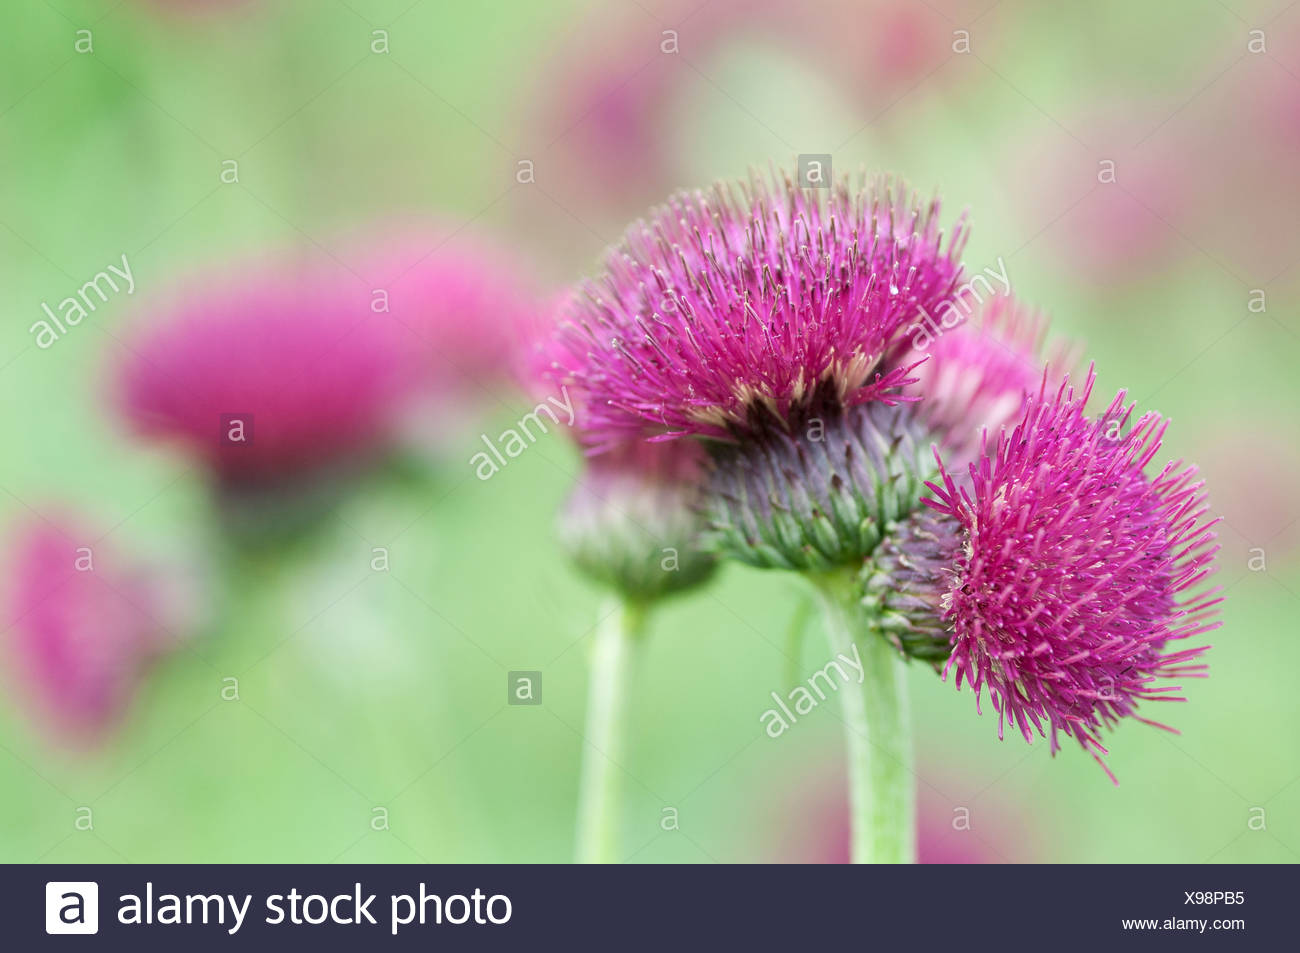 Cirsium rivulare Atropurpureum, Thistle, Brook thistle, Purple flowers subject. - Stock Image